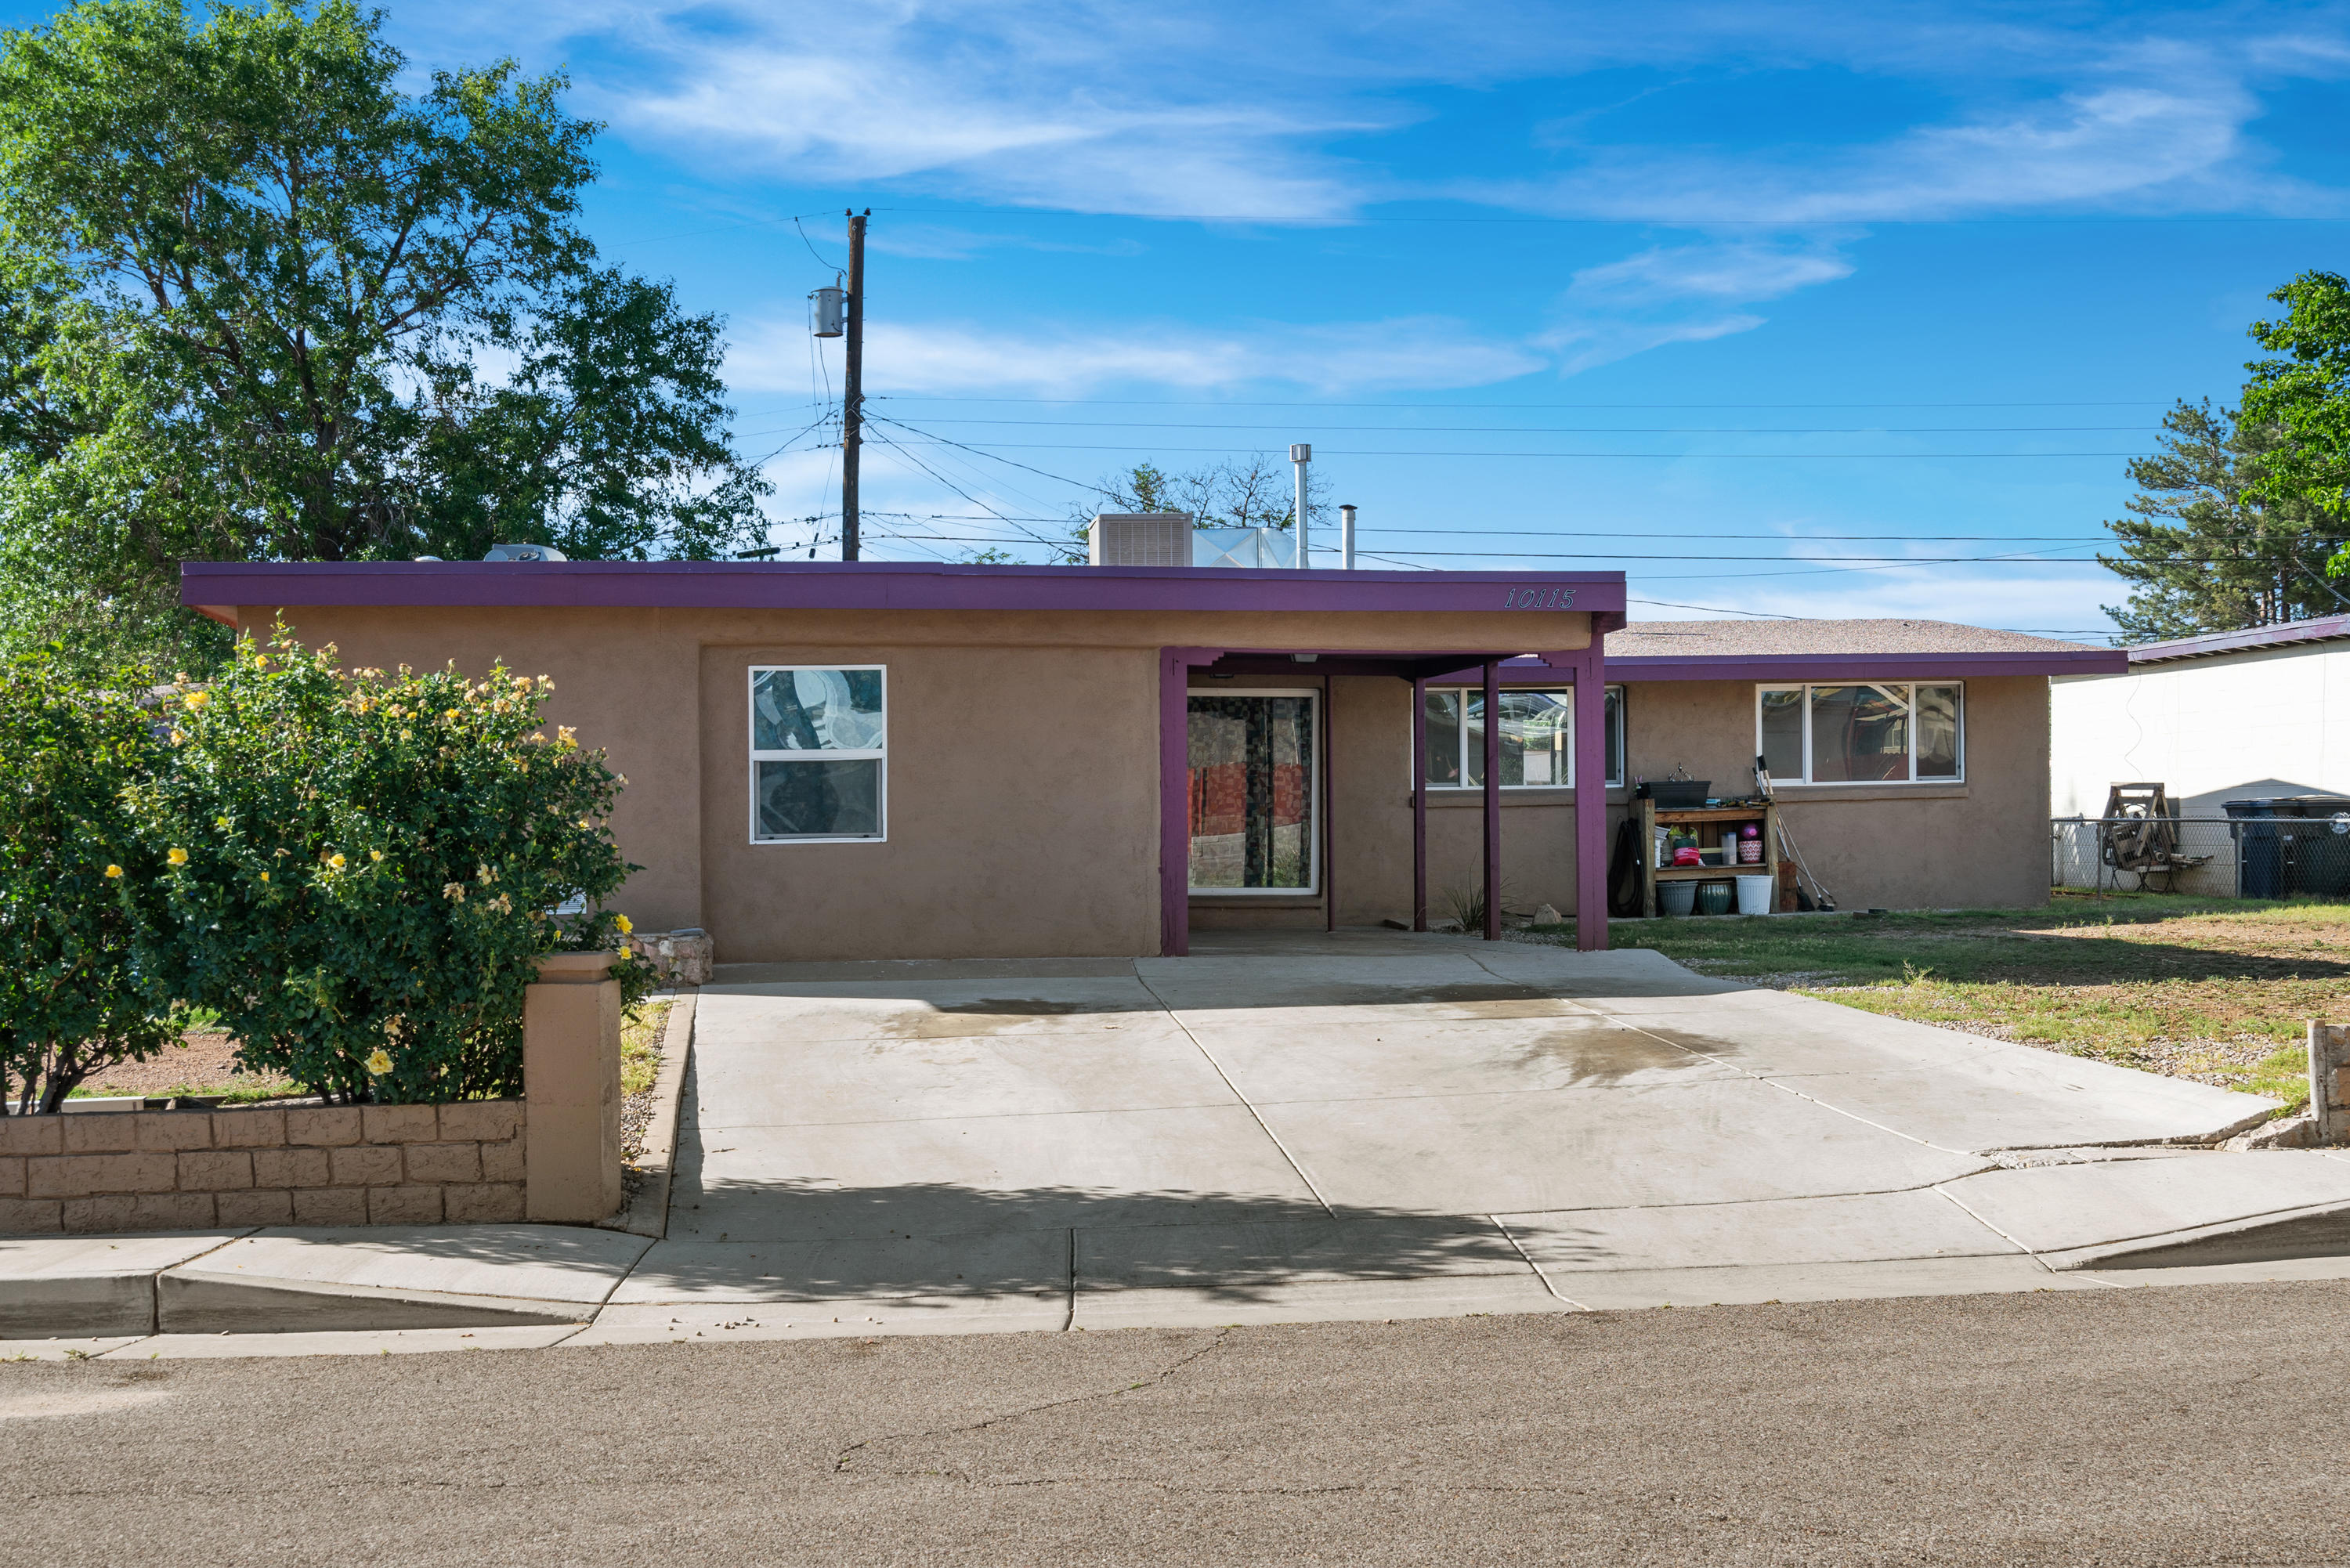 BACK ON MARKET. 4 bedroom, 2 bath home featuring a central living room alongside a cozy den with traditional wood-burning fireplace. Brand new carpet placed in all 4 bedrooms as of June 1st. The ample master bedroom with walk-in closet is on the opposite side of the house from the other 3 bedrooms. Kitchen features granite countertops and is directly adjacent to separate dining room. Large front yard with established rose bushes. Prime location, convenient and close to schools, shopping centers, and parks. Direct backyard access to arroyo with walking and biking trails.